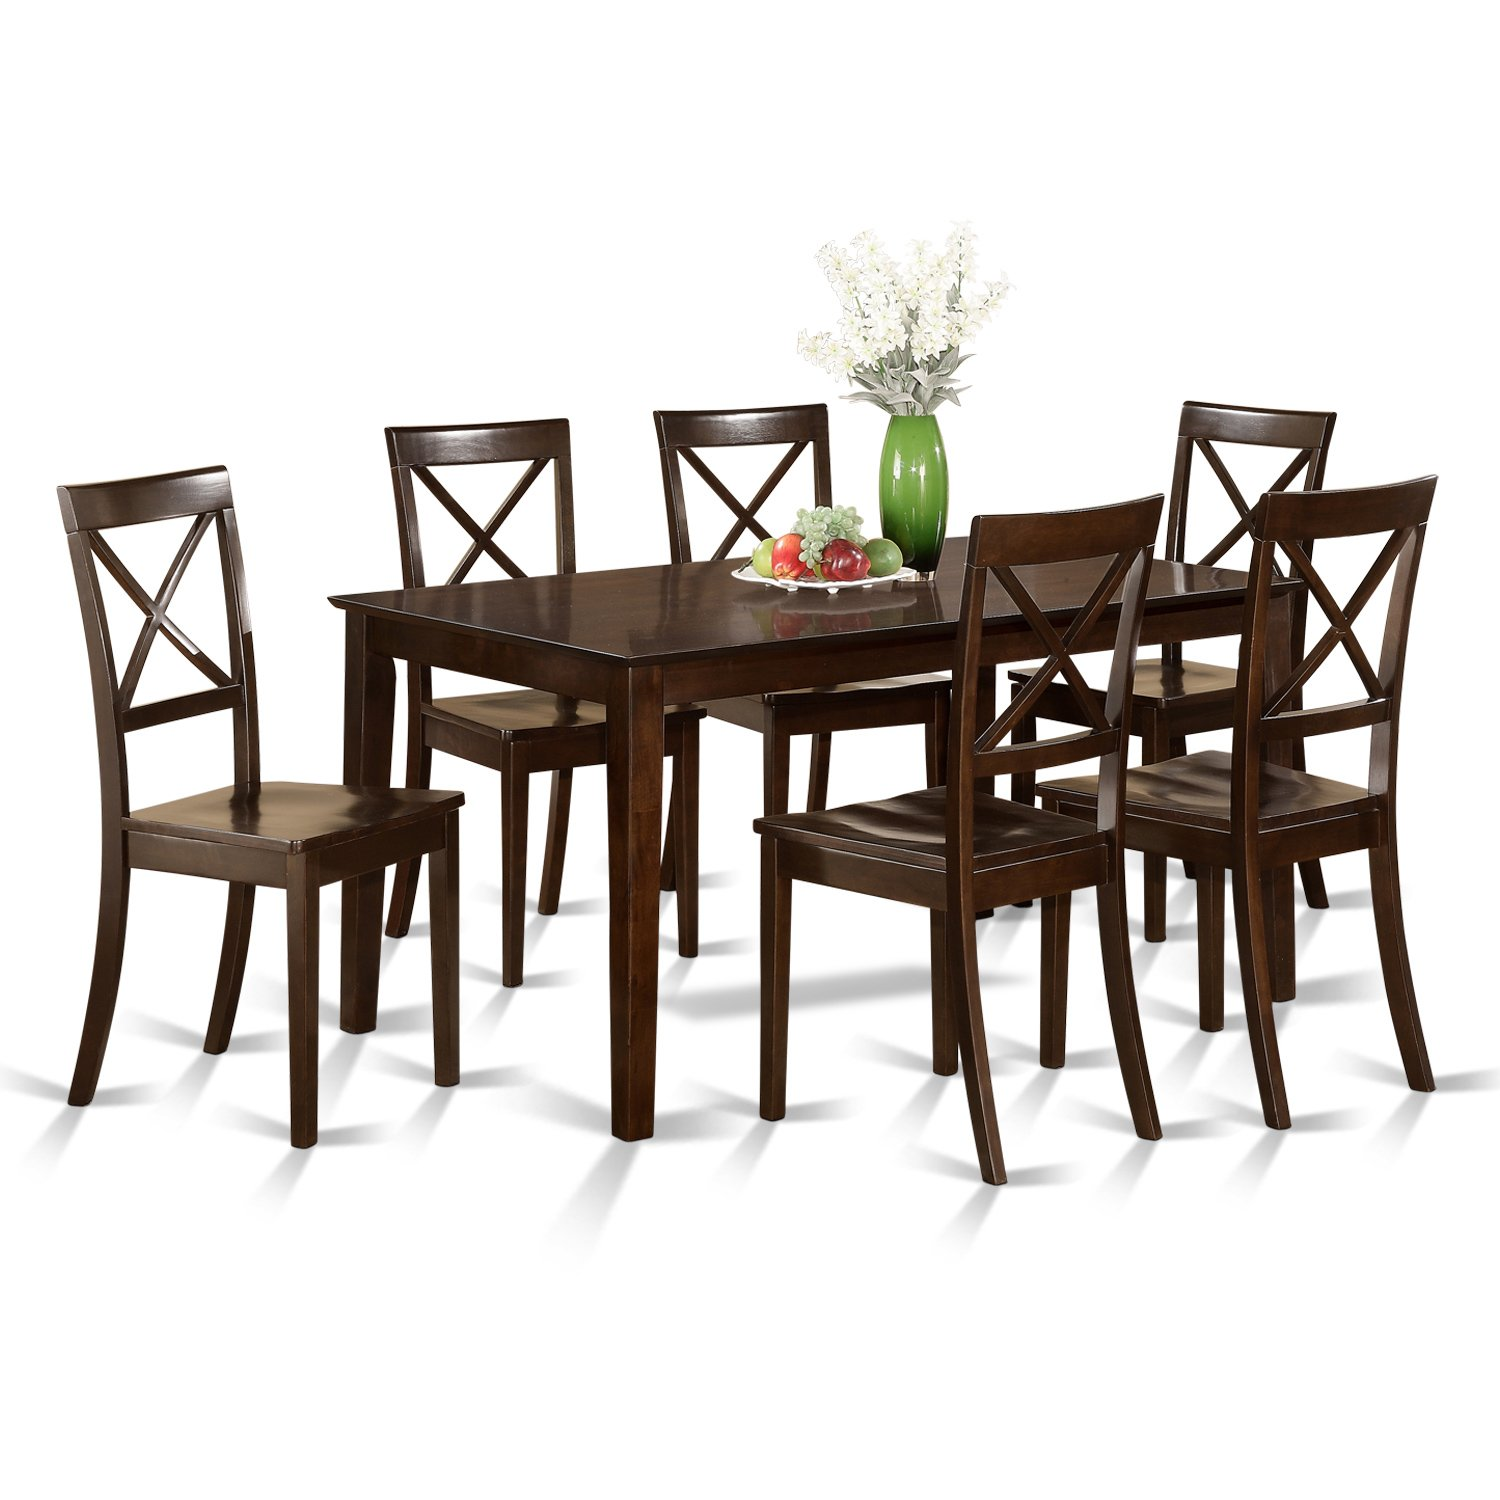 CAB7S-CAP-W 7 Pc formal Dining room set – Table and 6 formal Dining Chairs